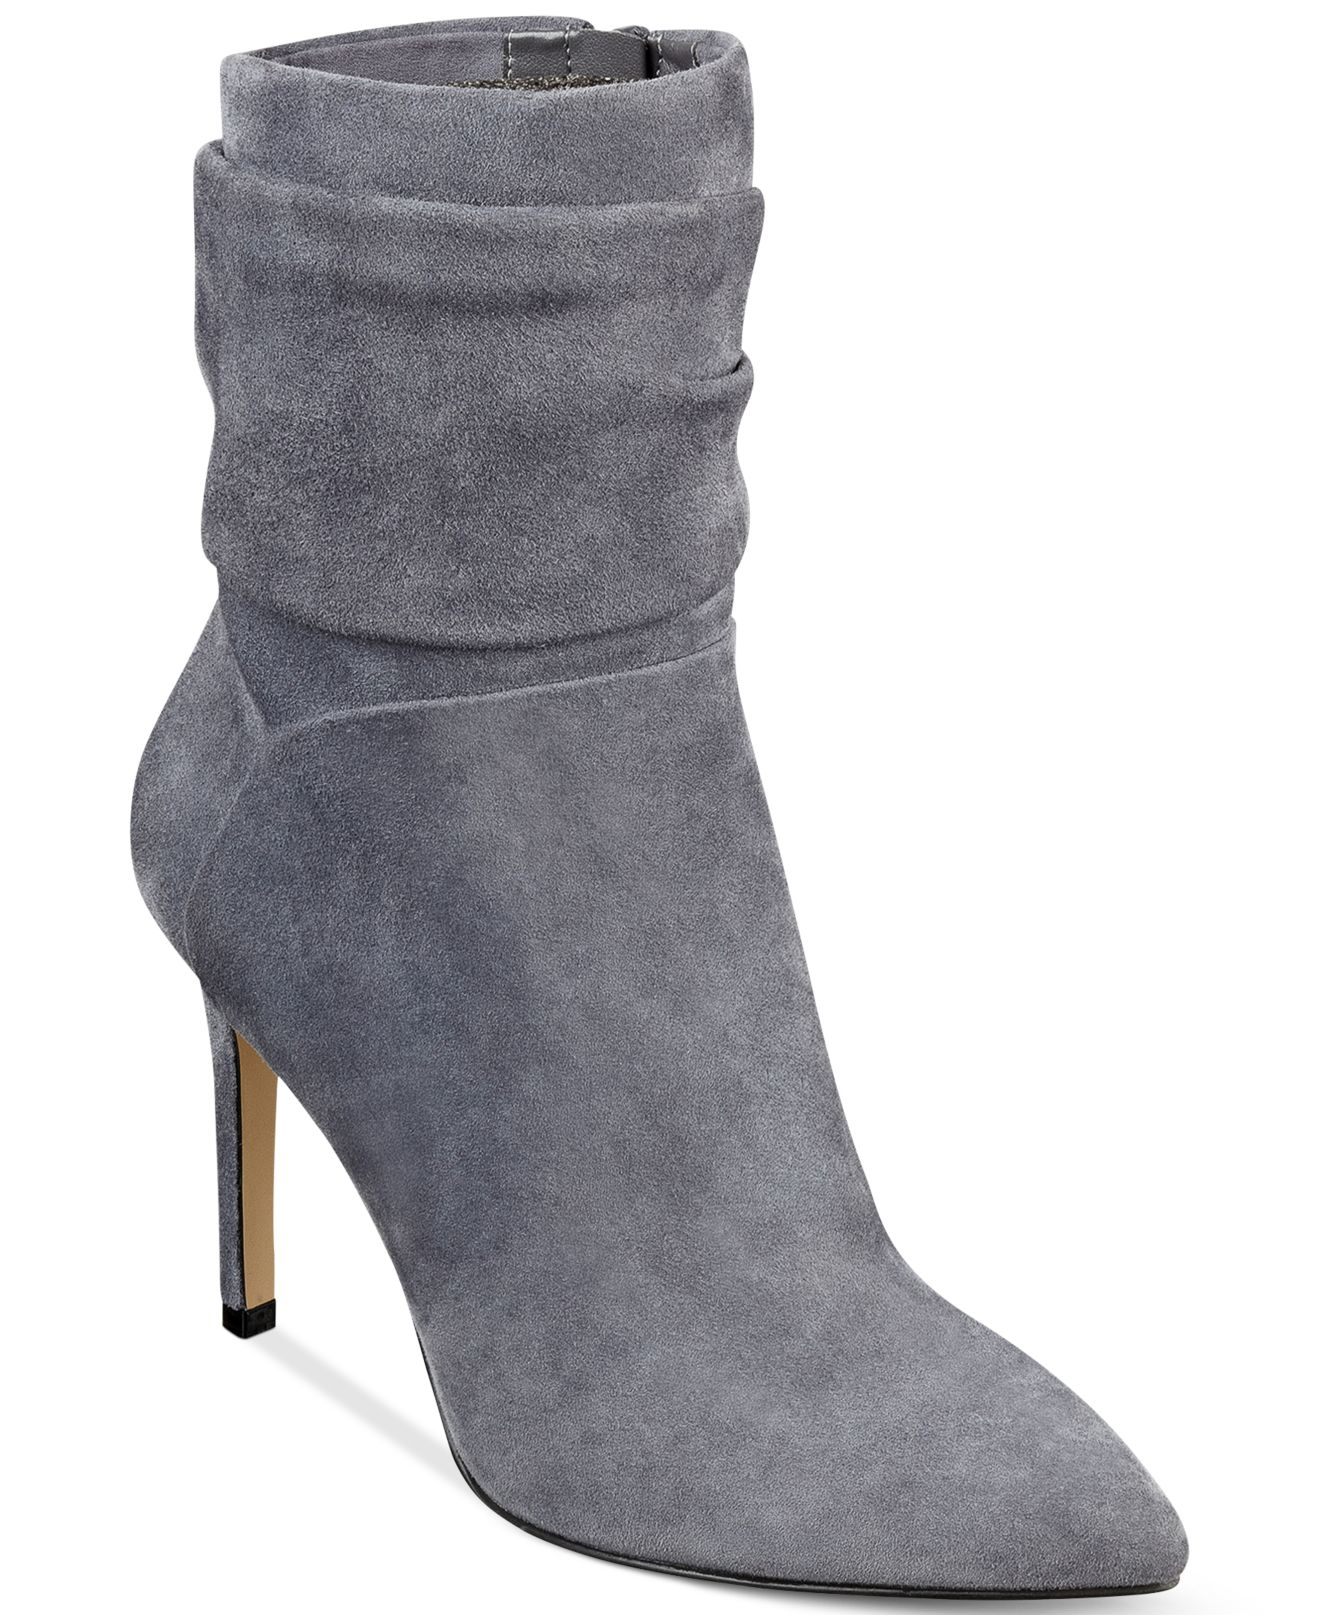 Womens Boots GUESS Dreww Pewter Leather